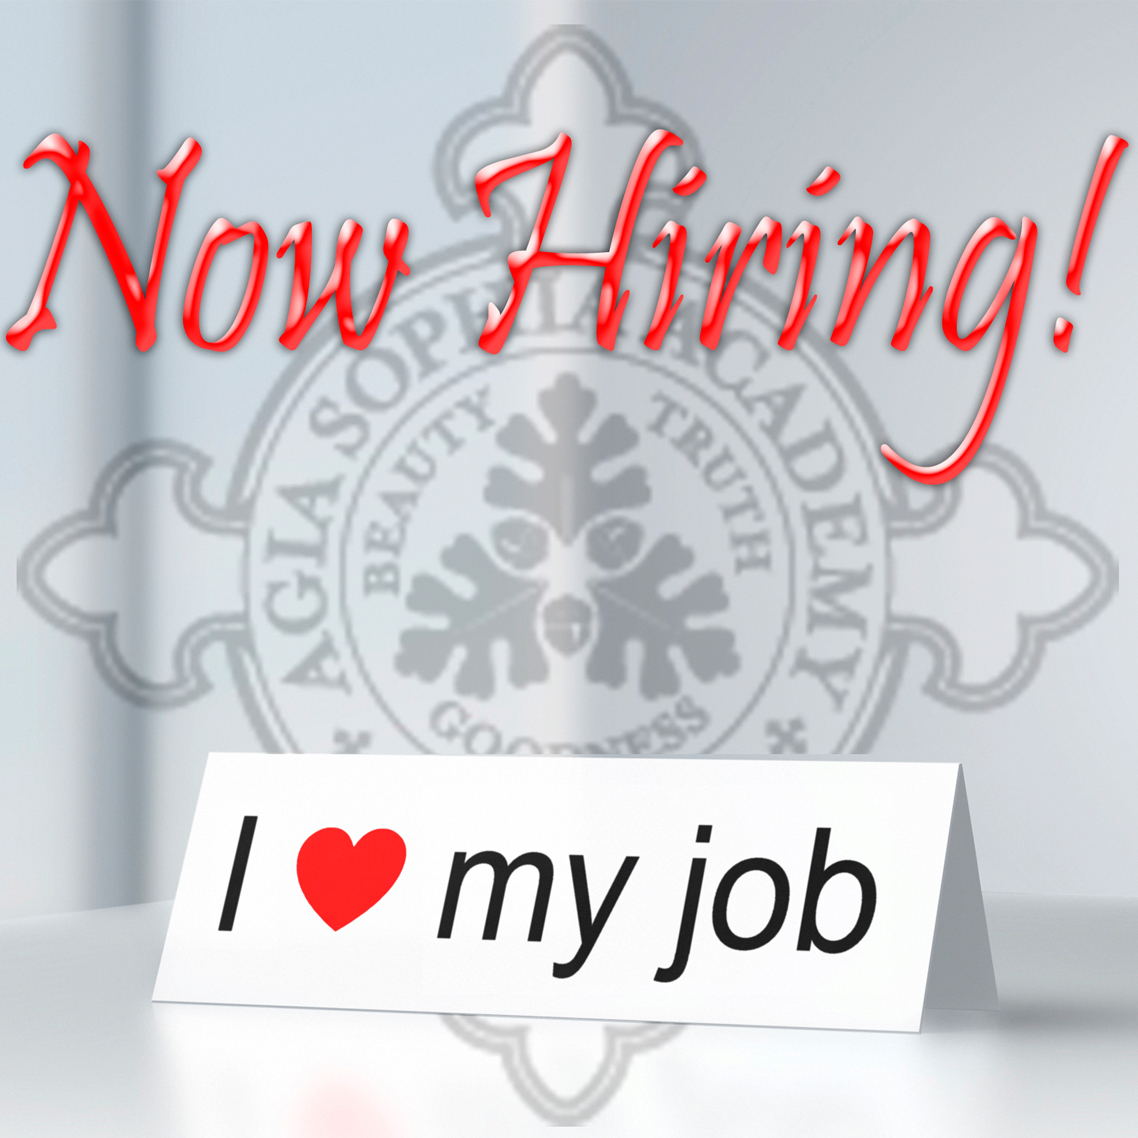 Looking for a Part-Time Job?